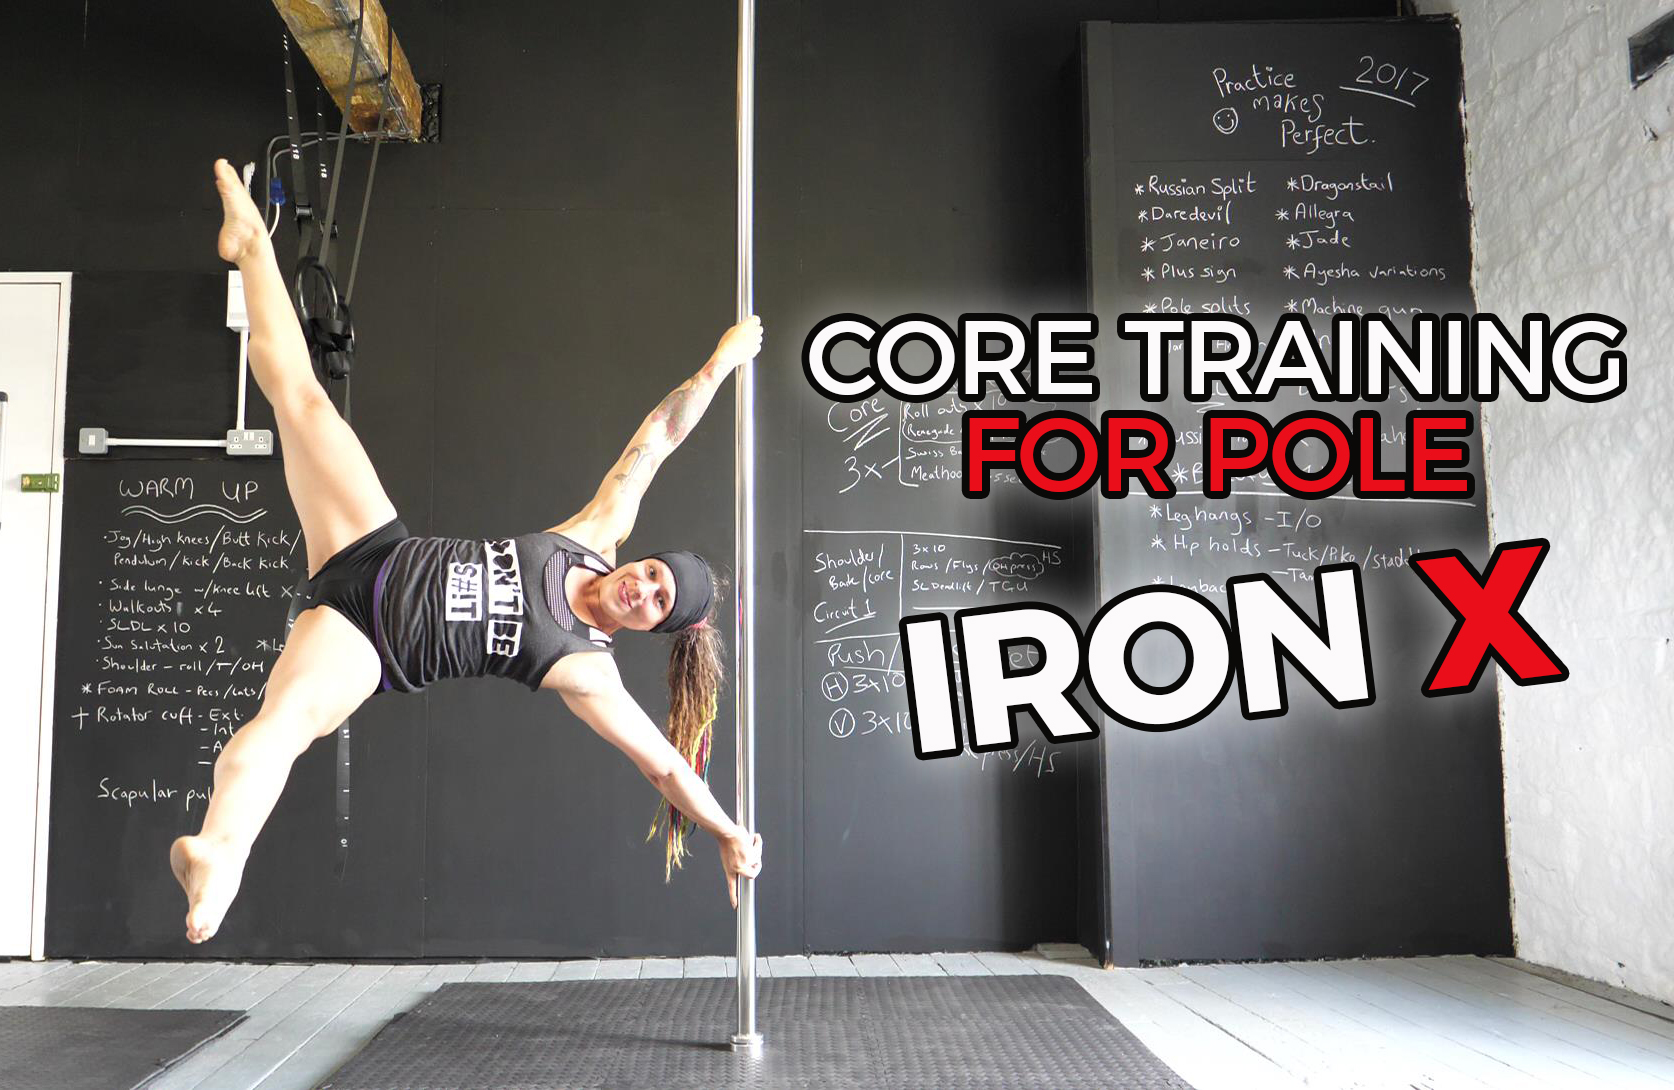 Core training for pole dancers (Part 3: Iron X fundamentals)